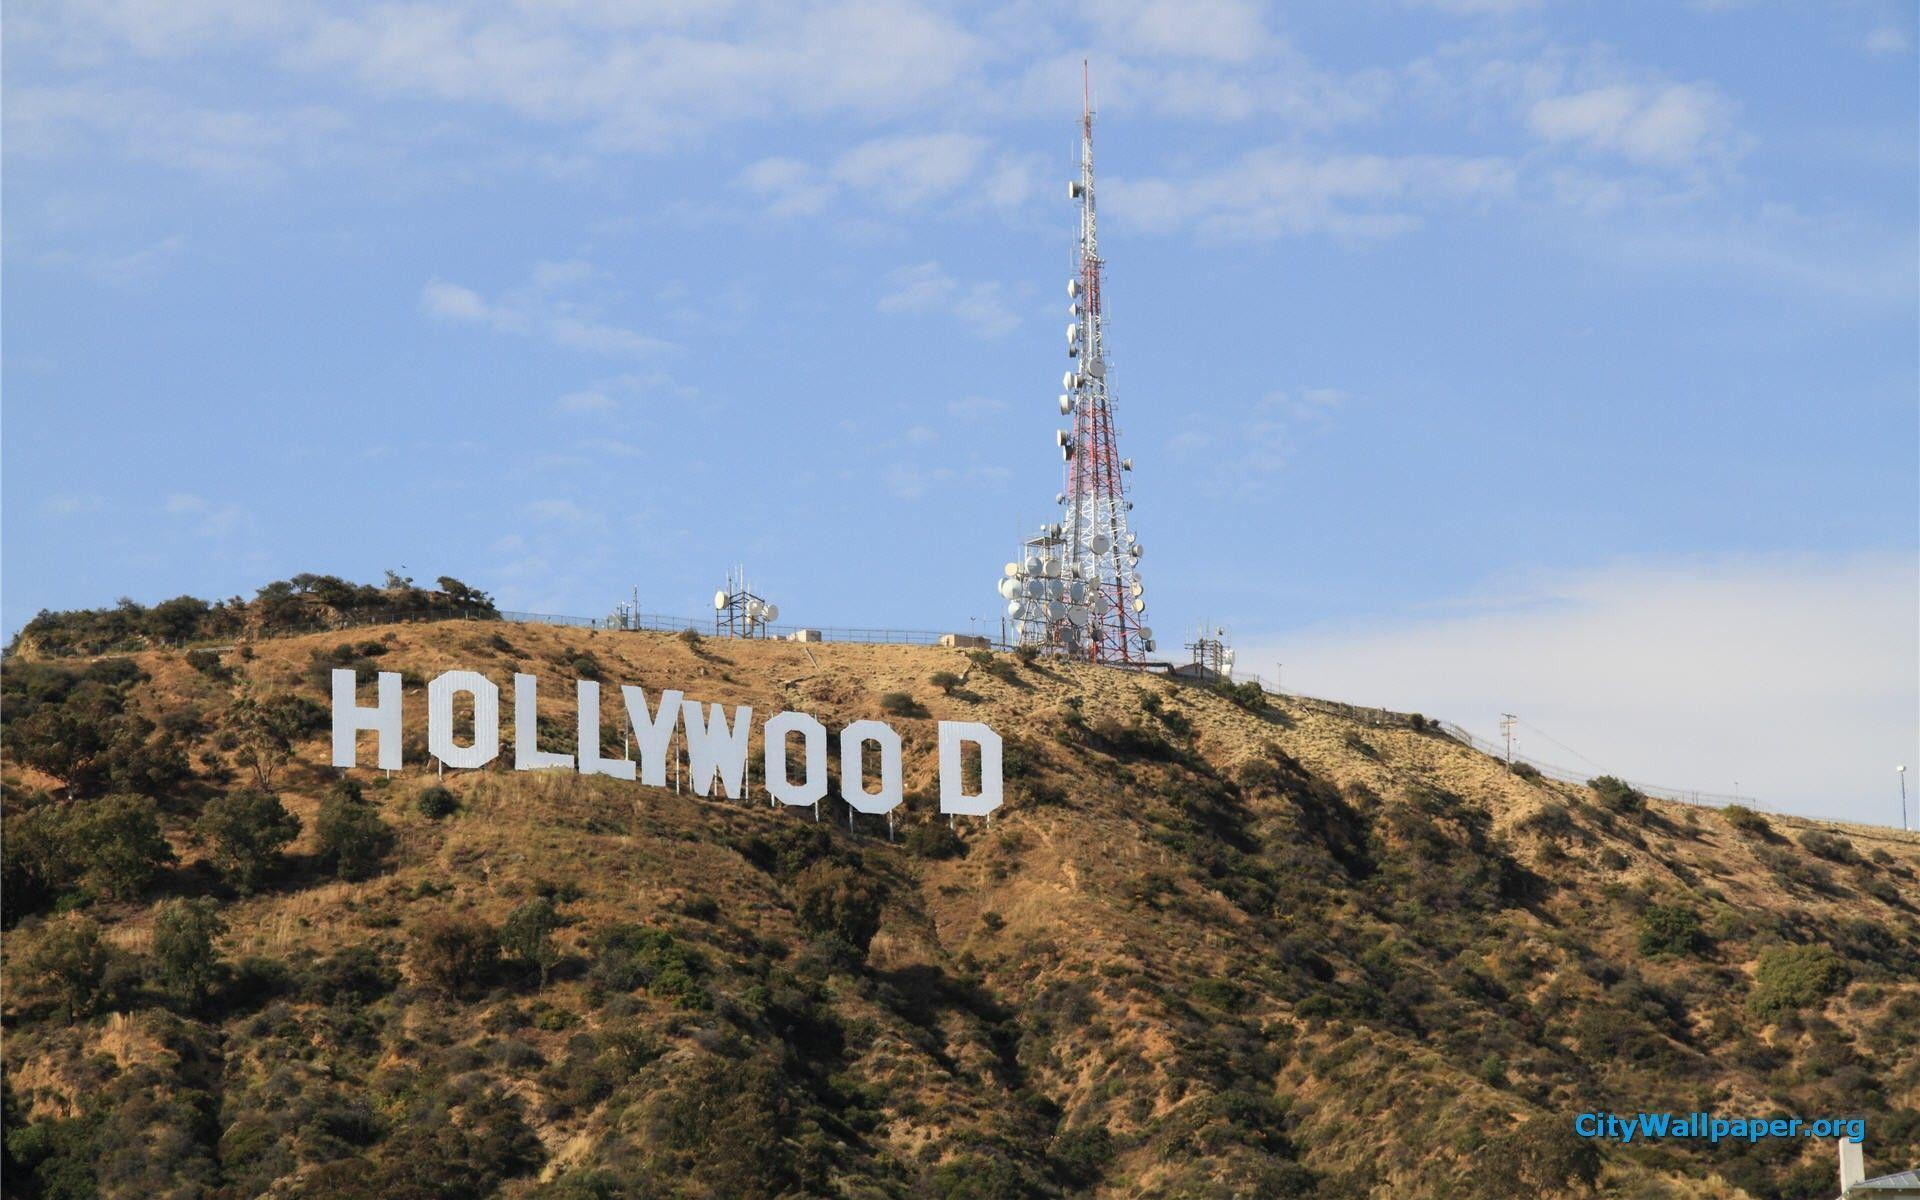 wallpapers a hollywood - photo #14